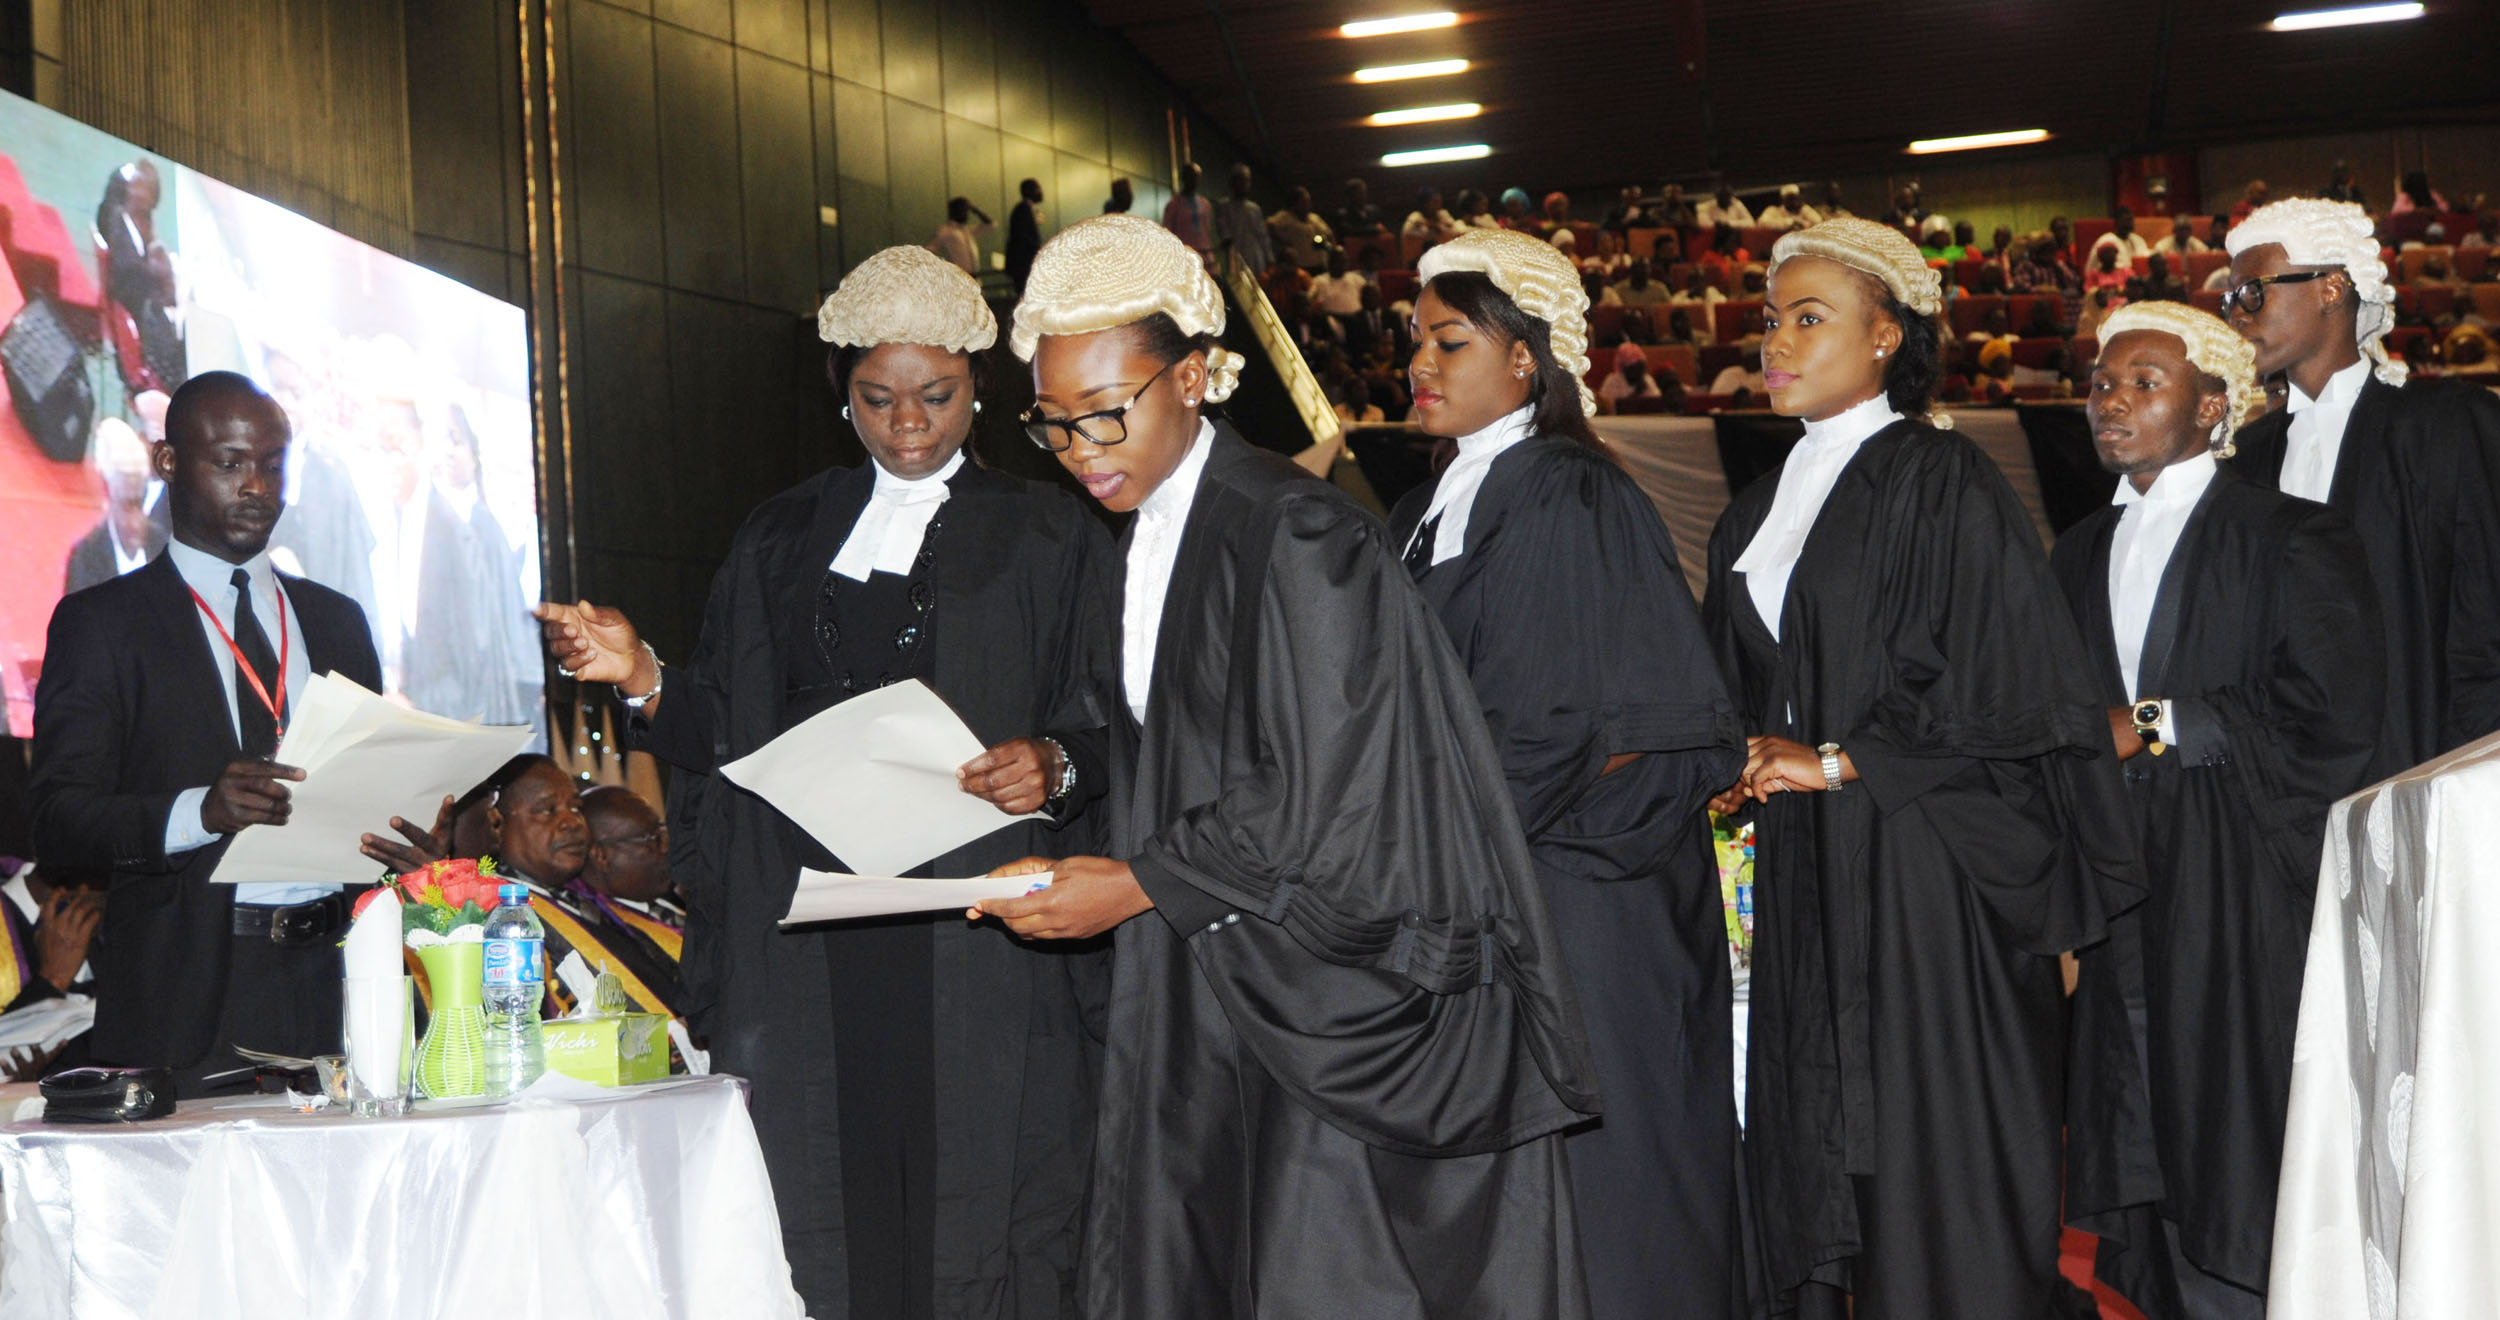 Top 10 Best Law School In Nigeria: Call To The Bar Ceremony In Abuja. Photo via Google